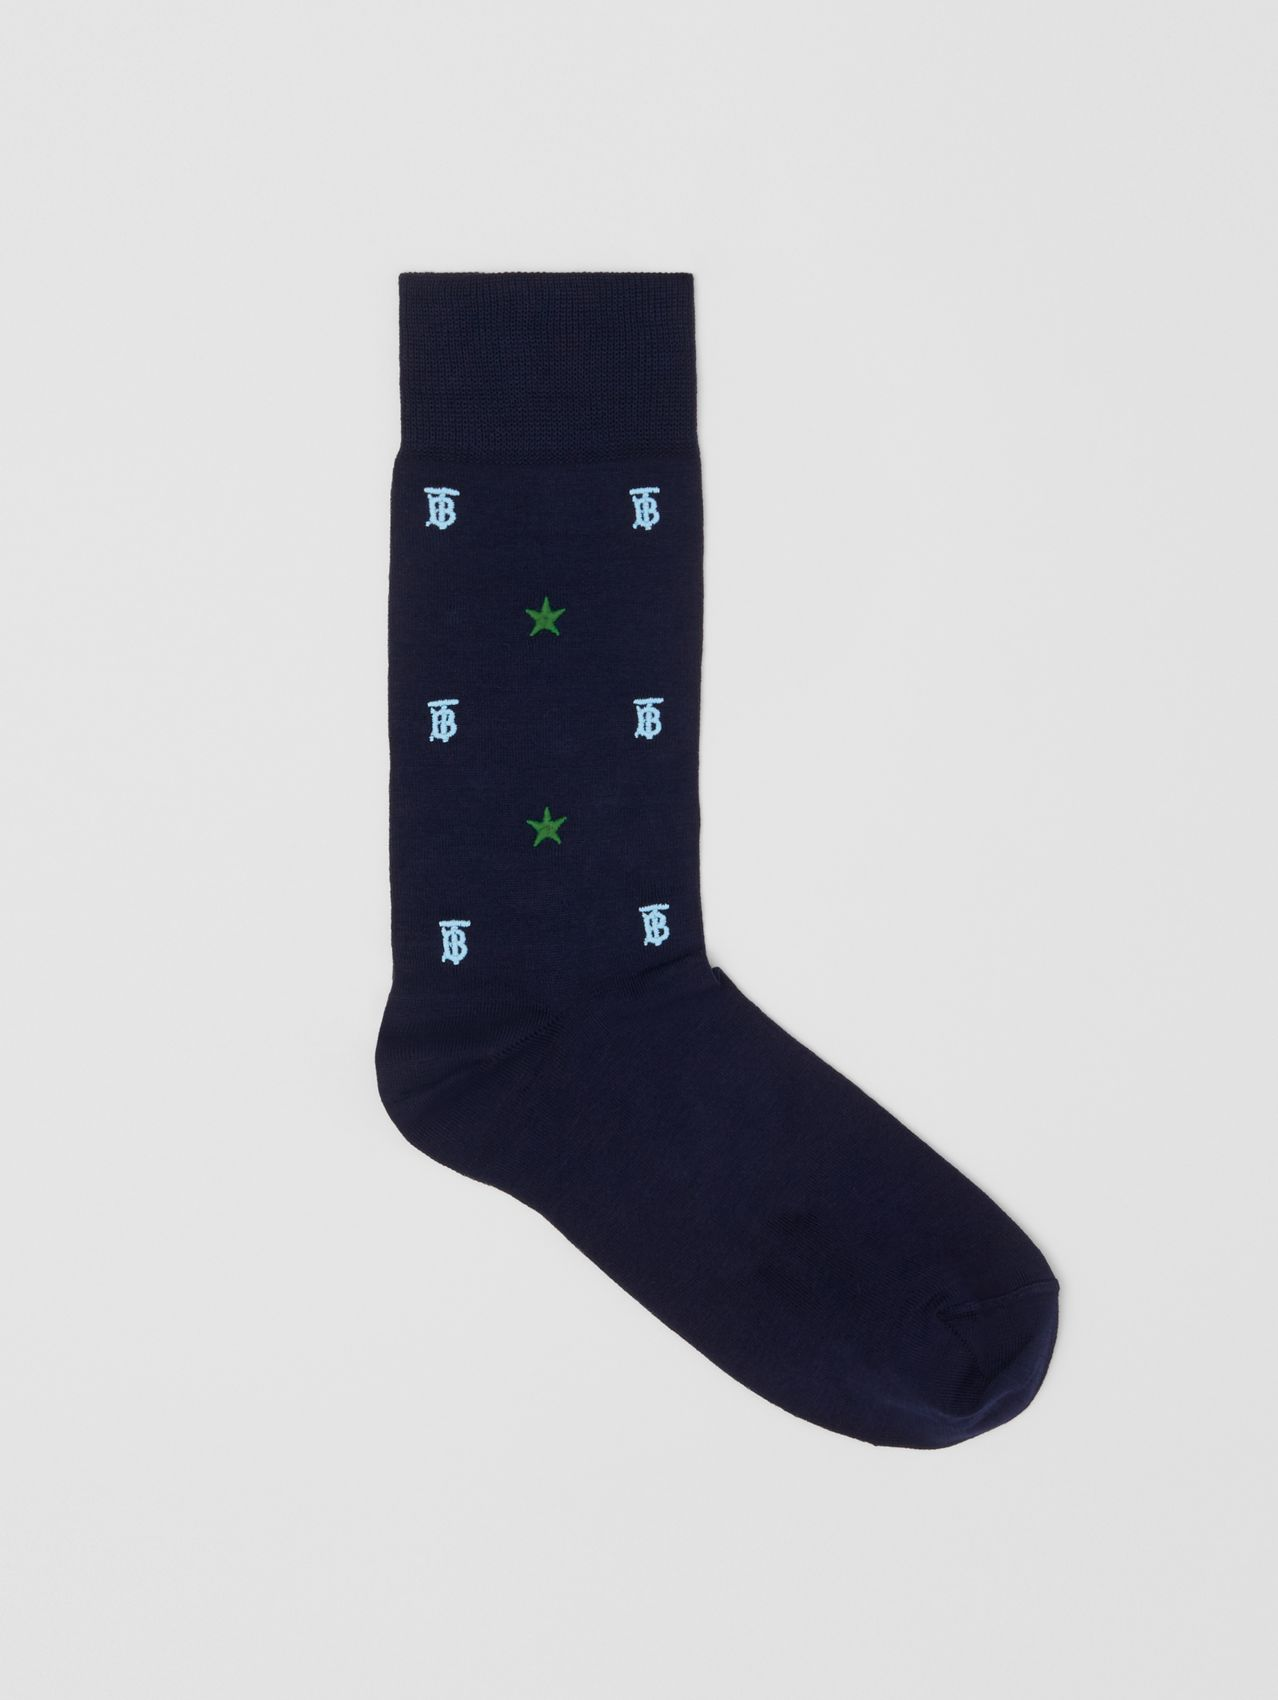 Star and Monogram Motif Cotton Blend Socks in Navy